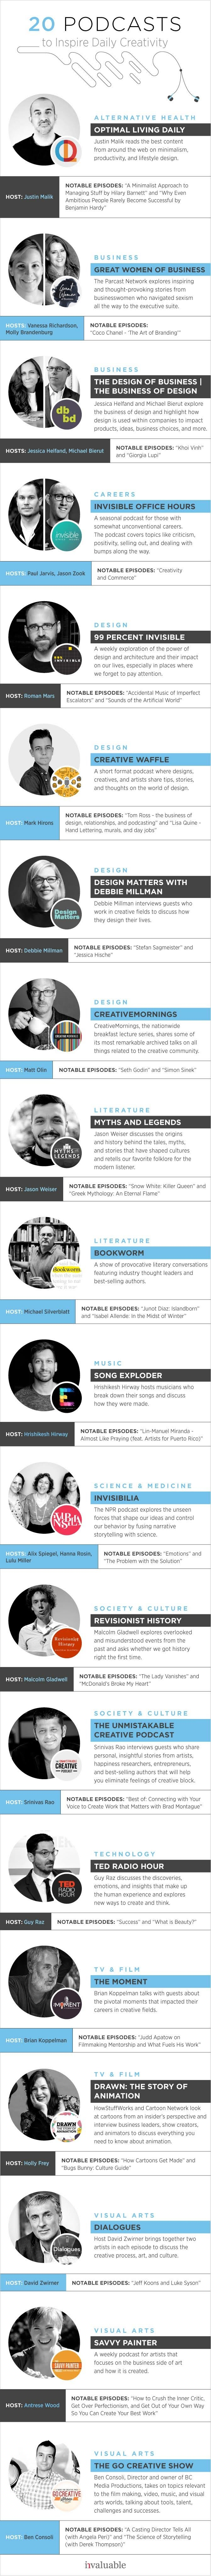 20 Podcasts to Inspire Daily Creativity - #infographic